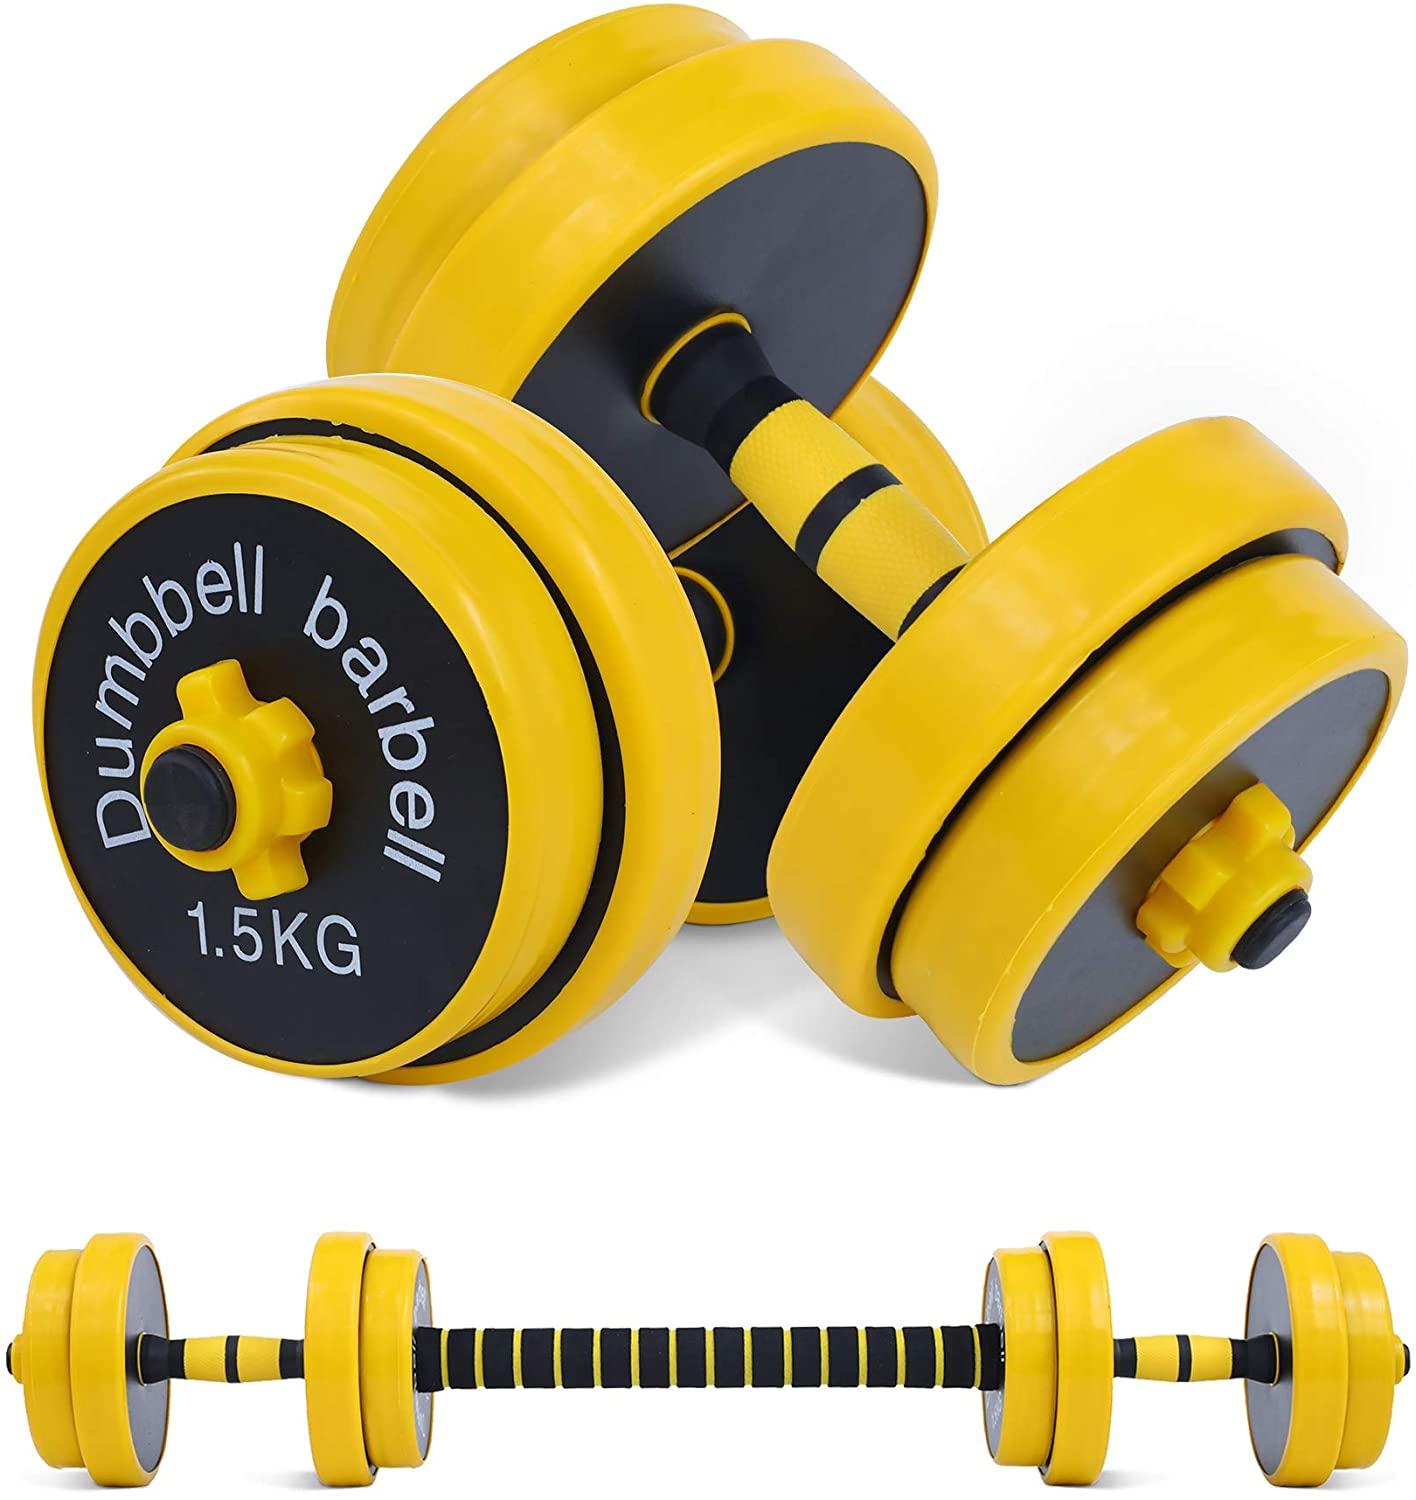 Nice C Adjustable Dumbbell Barbell Weight Pair, Free Weights 2-in-1 Set, Non-Slip Neoprene Hand, All-Purpose, Home, Gym, Office